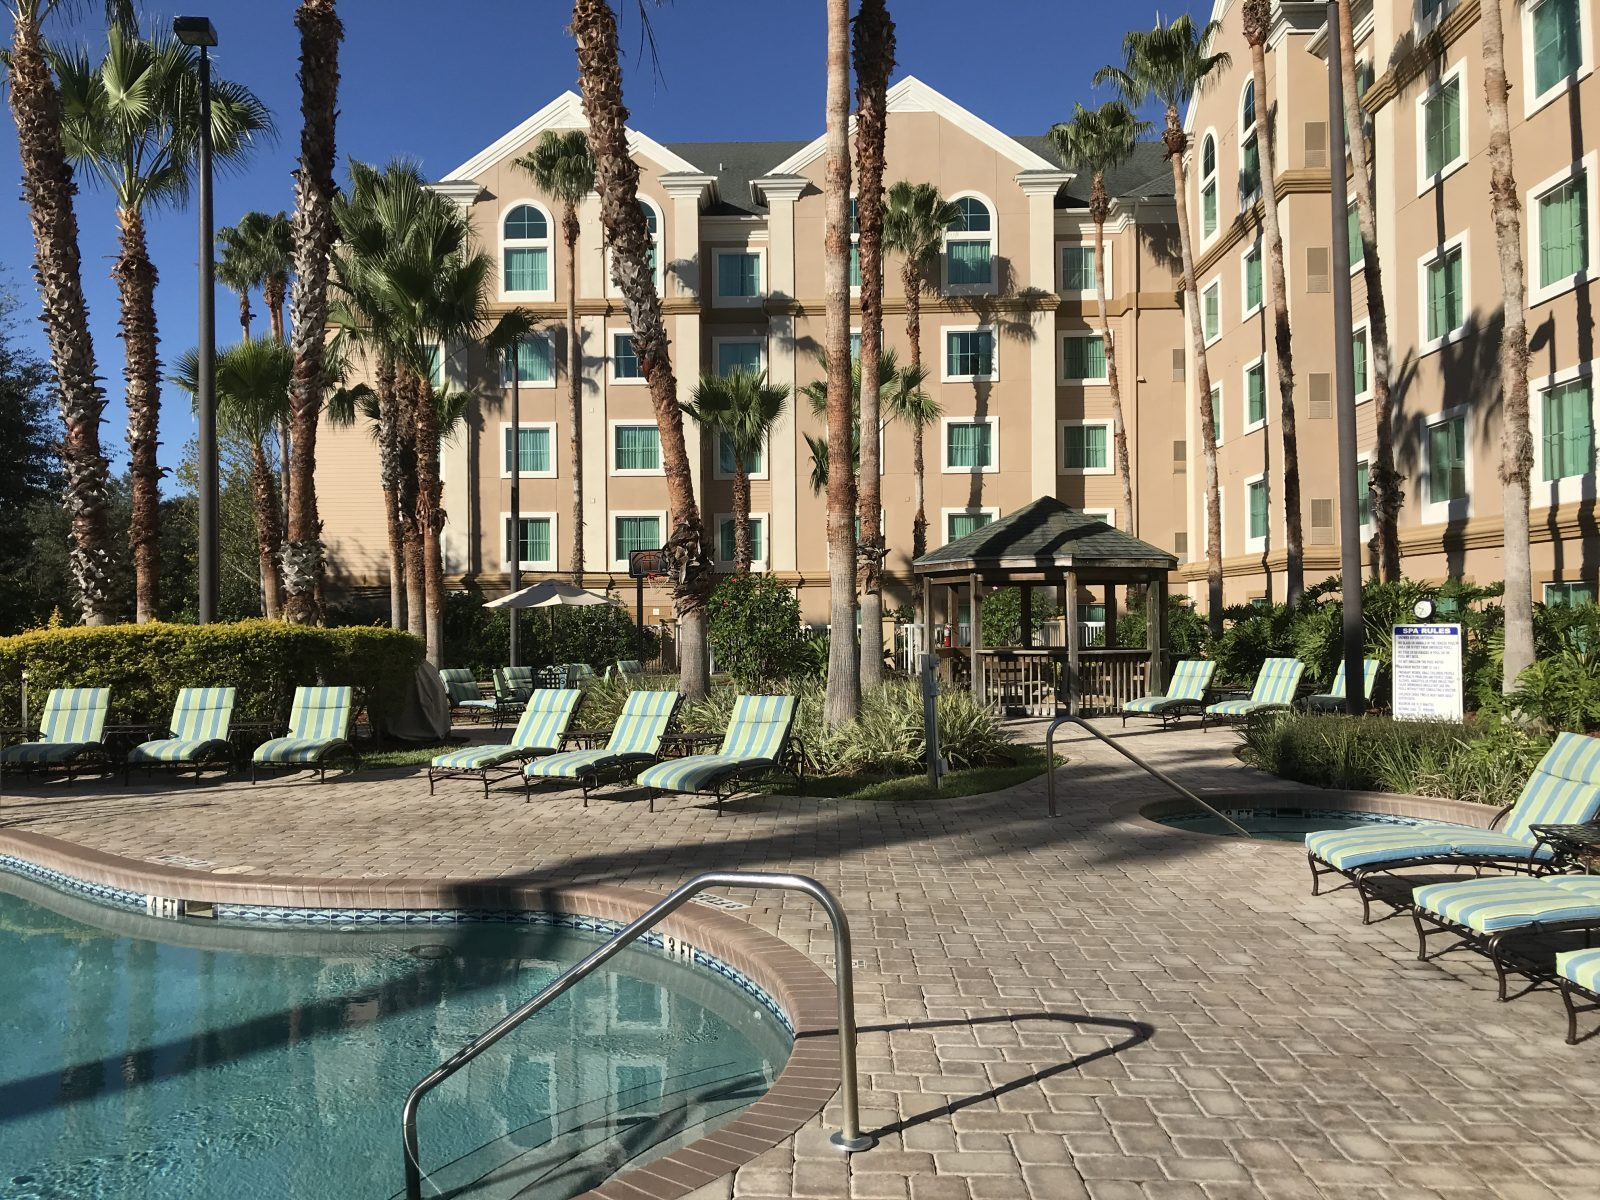 How to get a one-bedroom suite near Disney World from $75/night. Resort review of an affordable off-property Disney World hotel. #disneyworld #budgettravel #familytravel